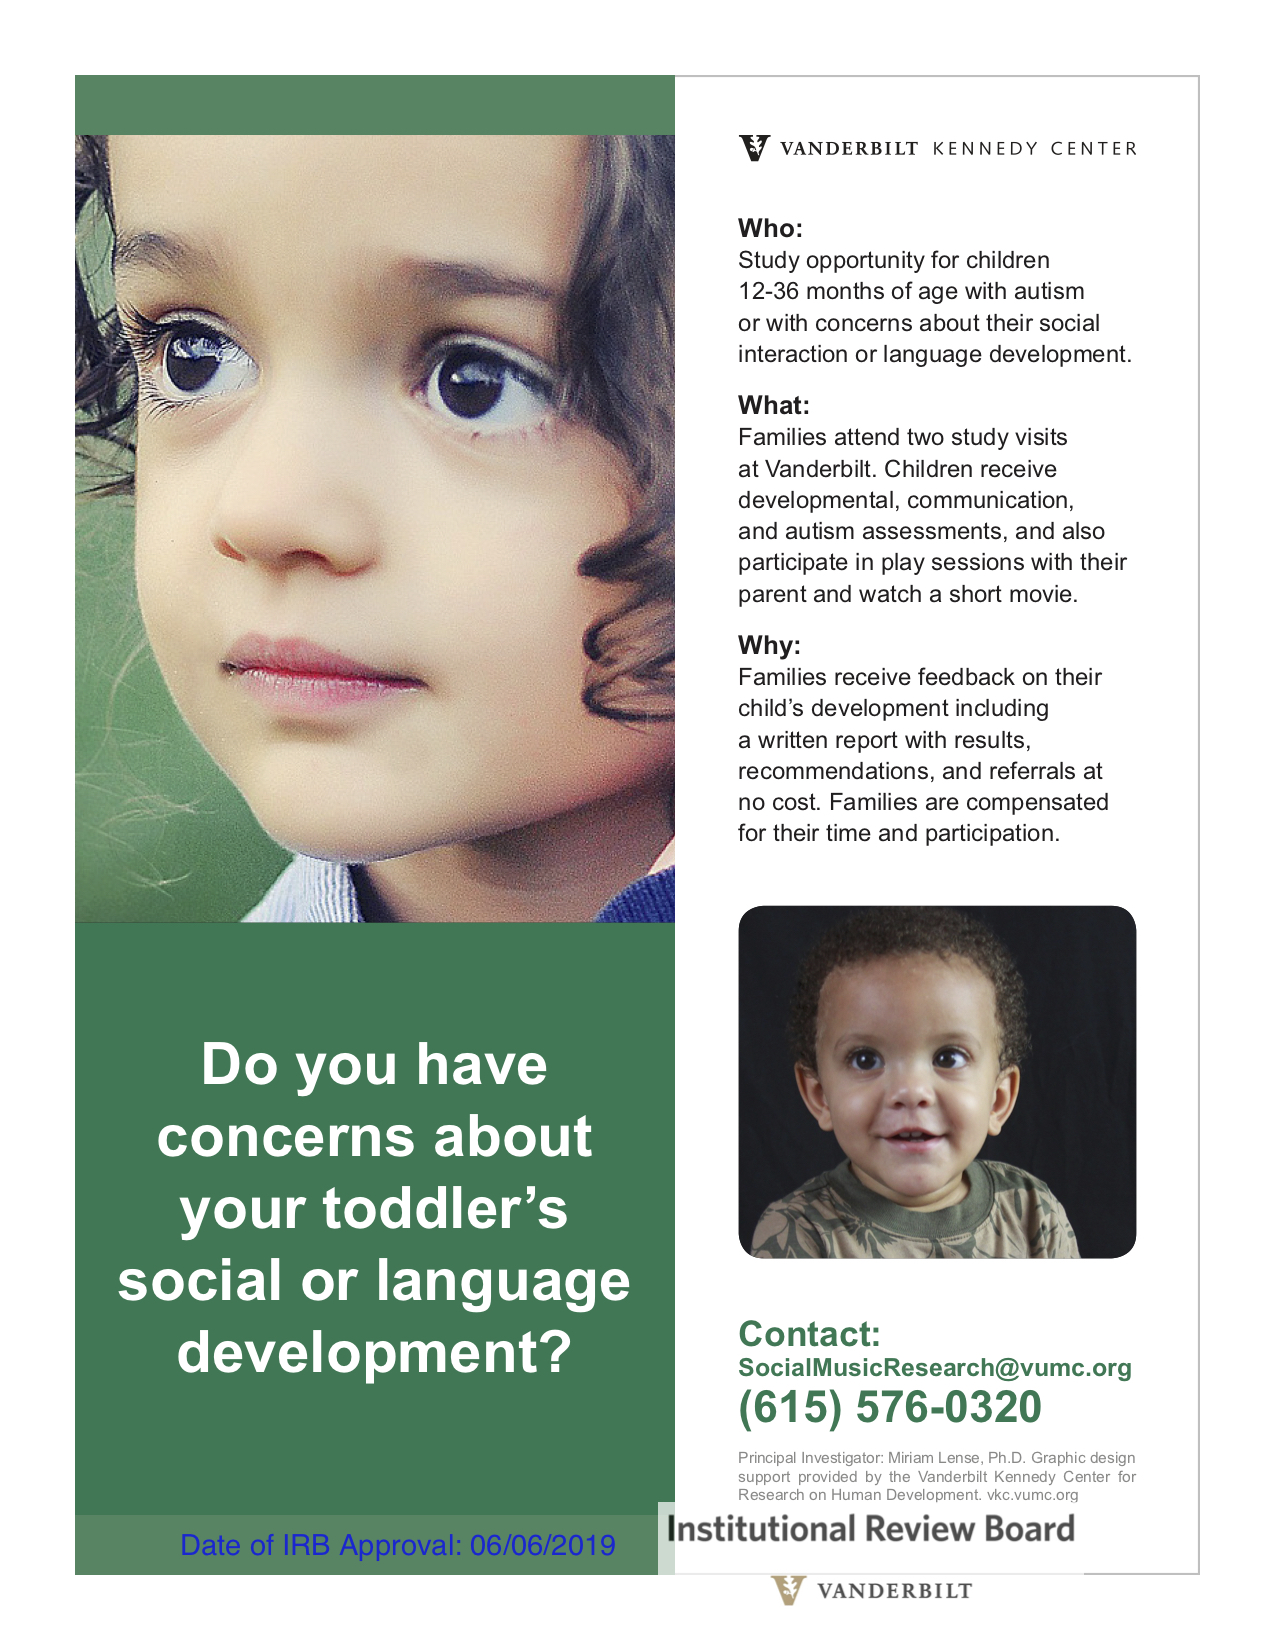 toddler-study-flyer